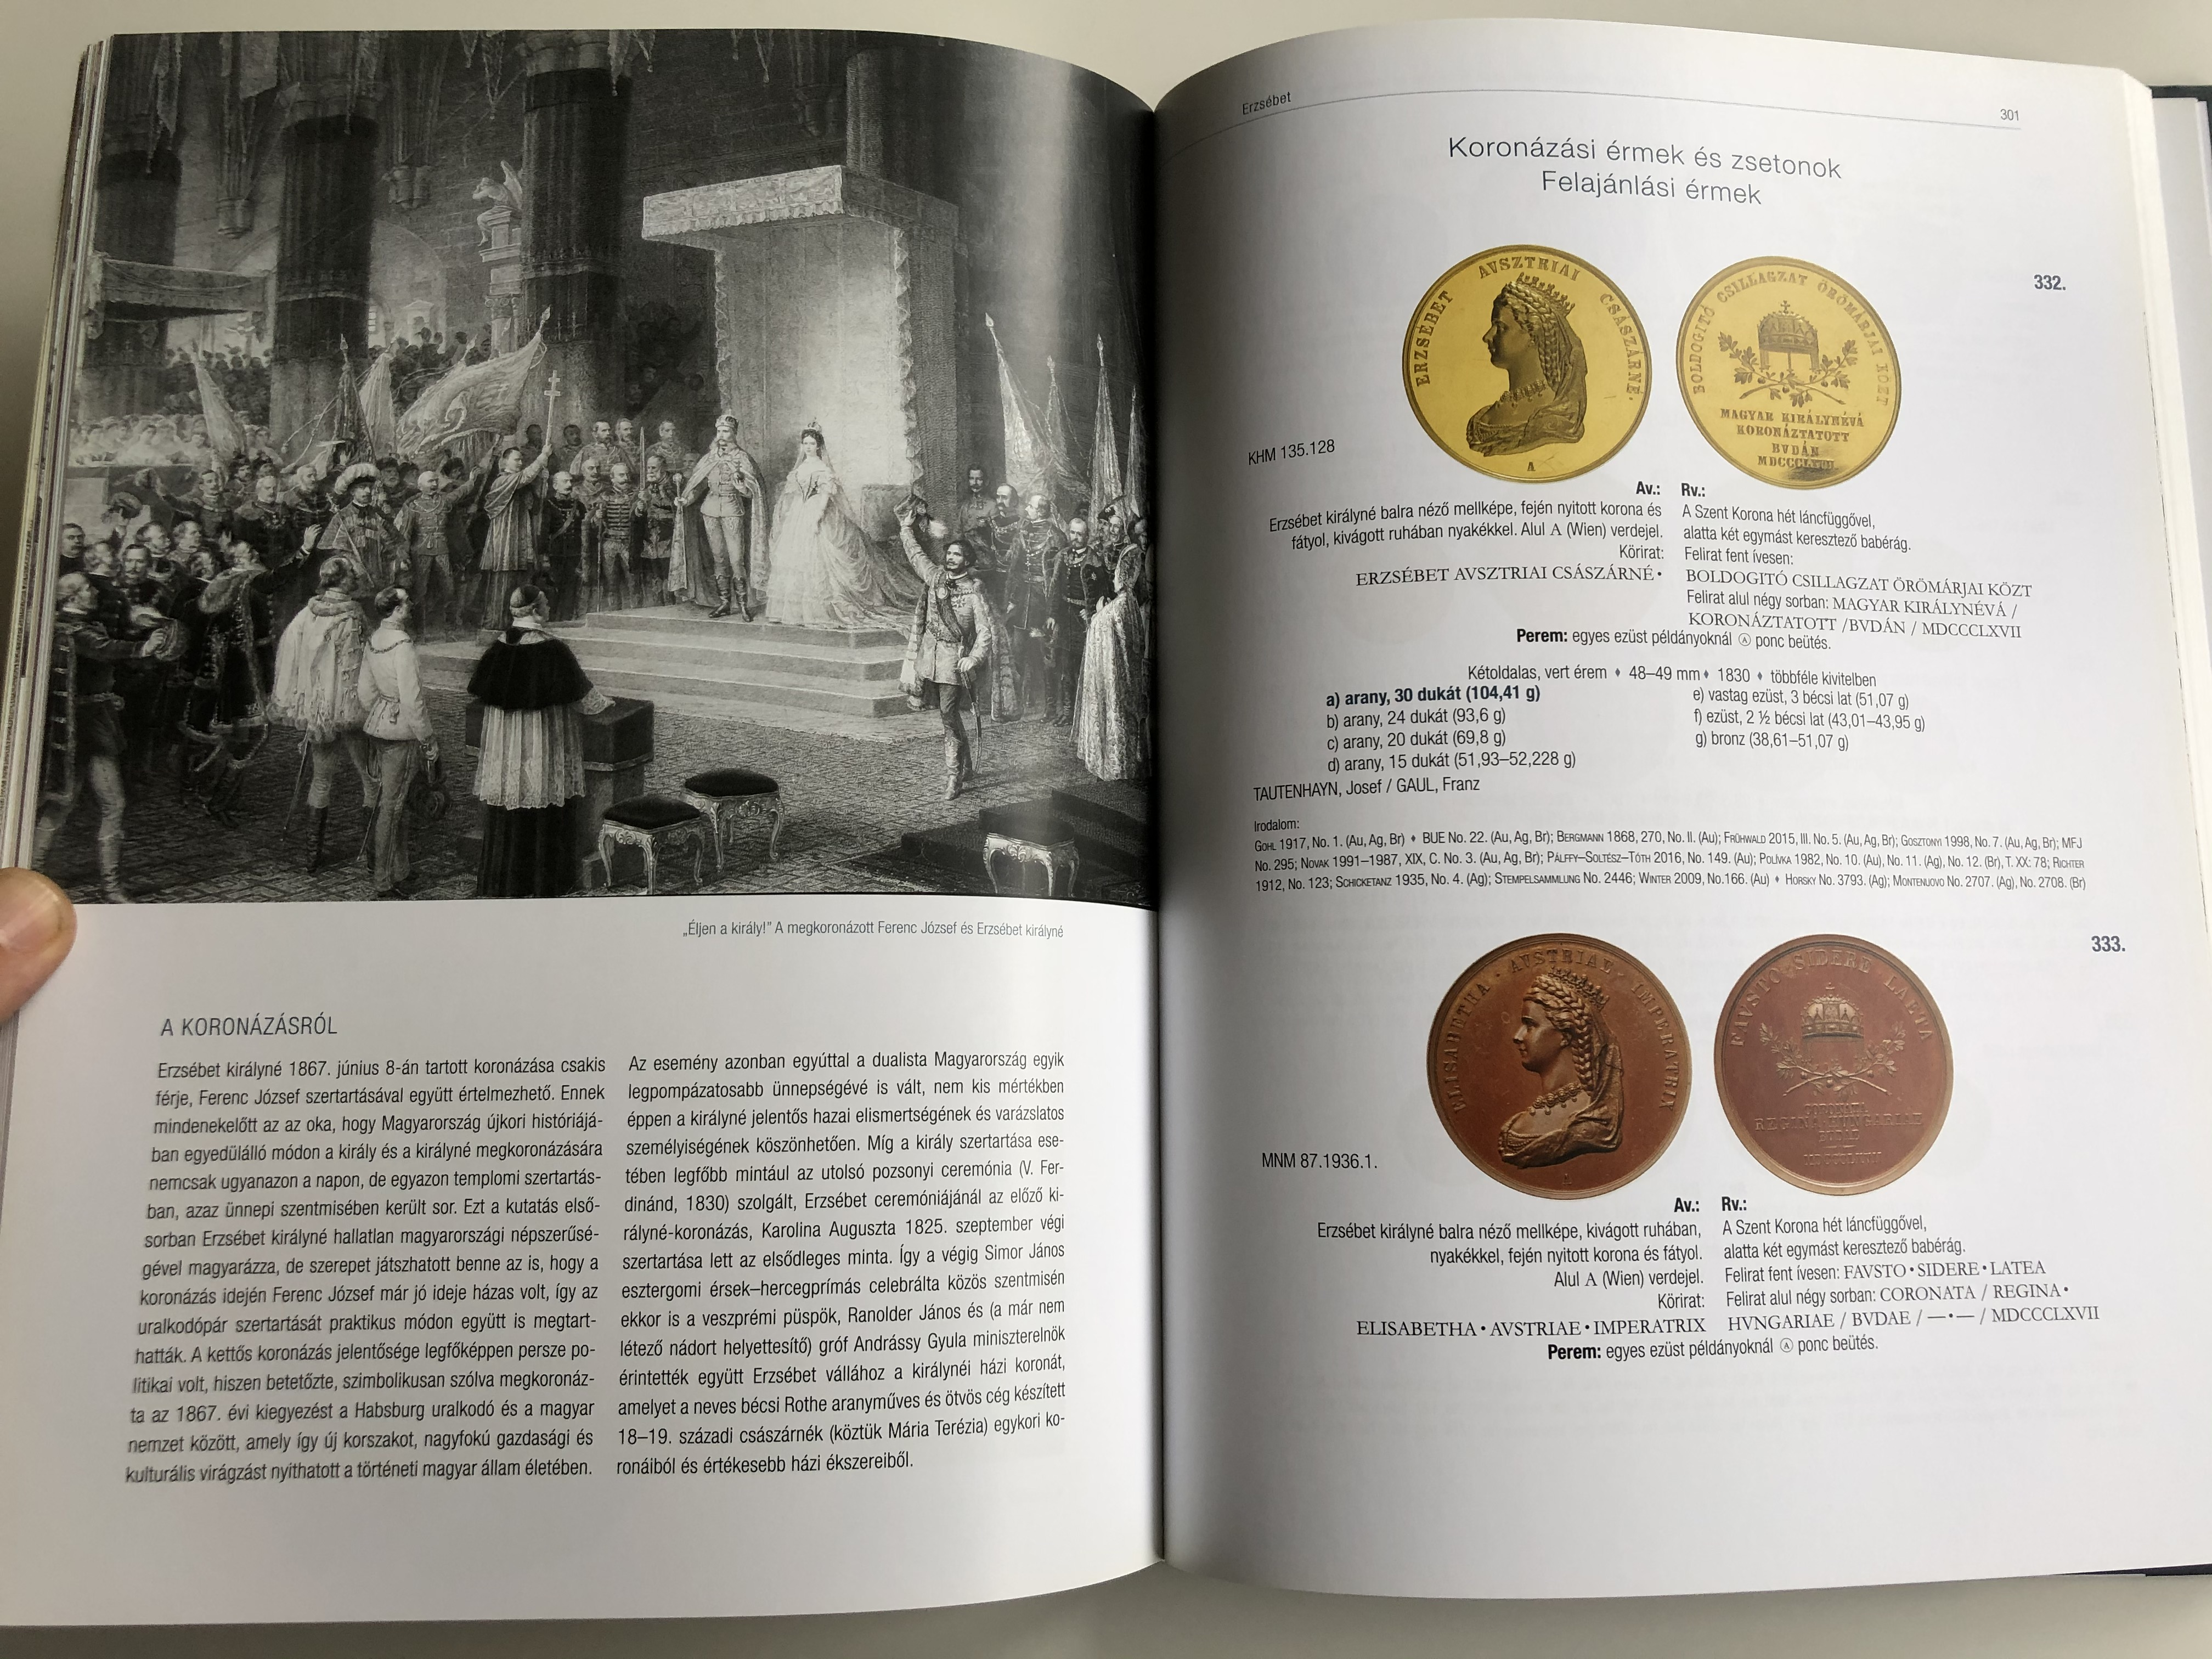 -catalog-of-hungarian-coins-of-rulers-from-1508-1916-coronatio-hungarica-in-nummis-16.jpg